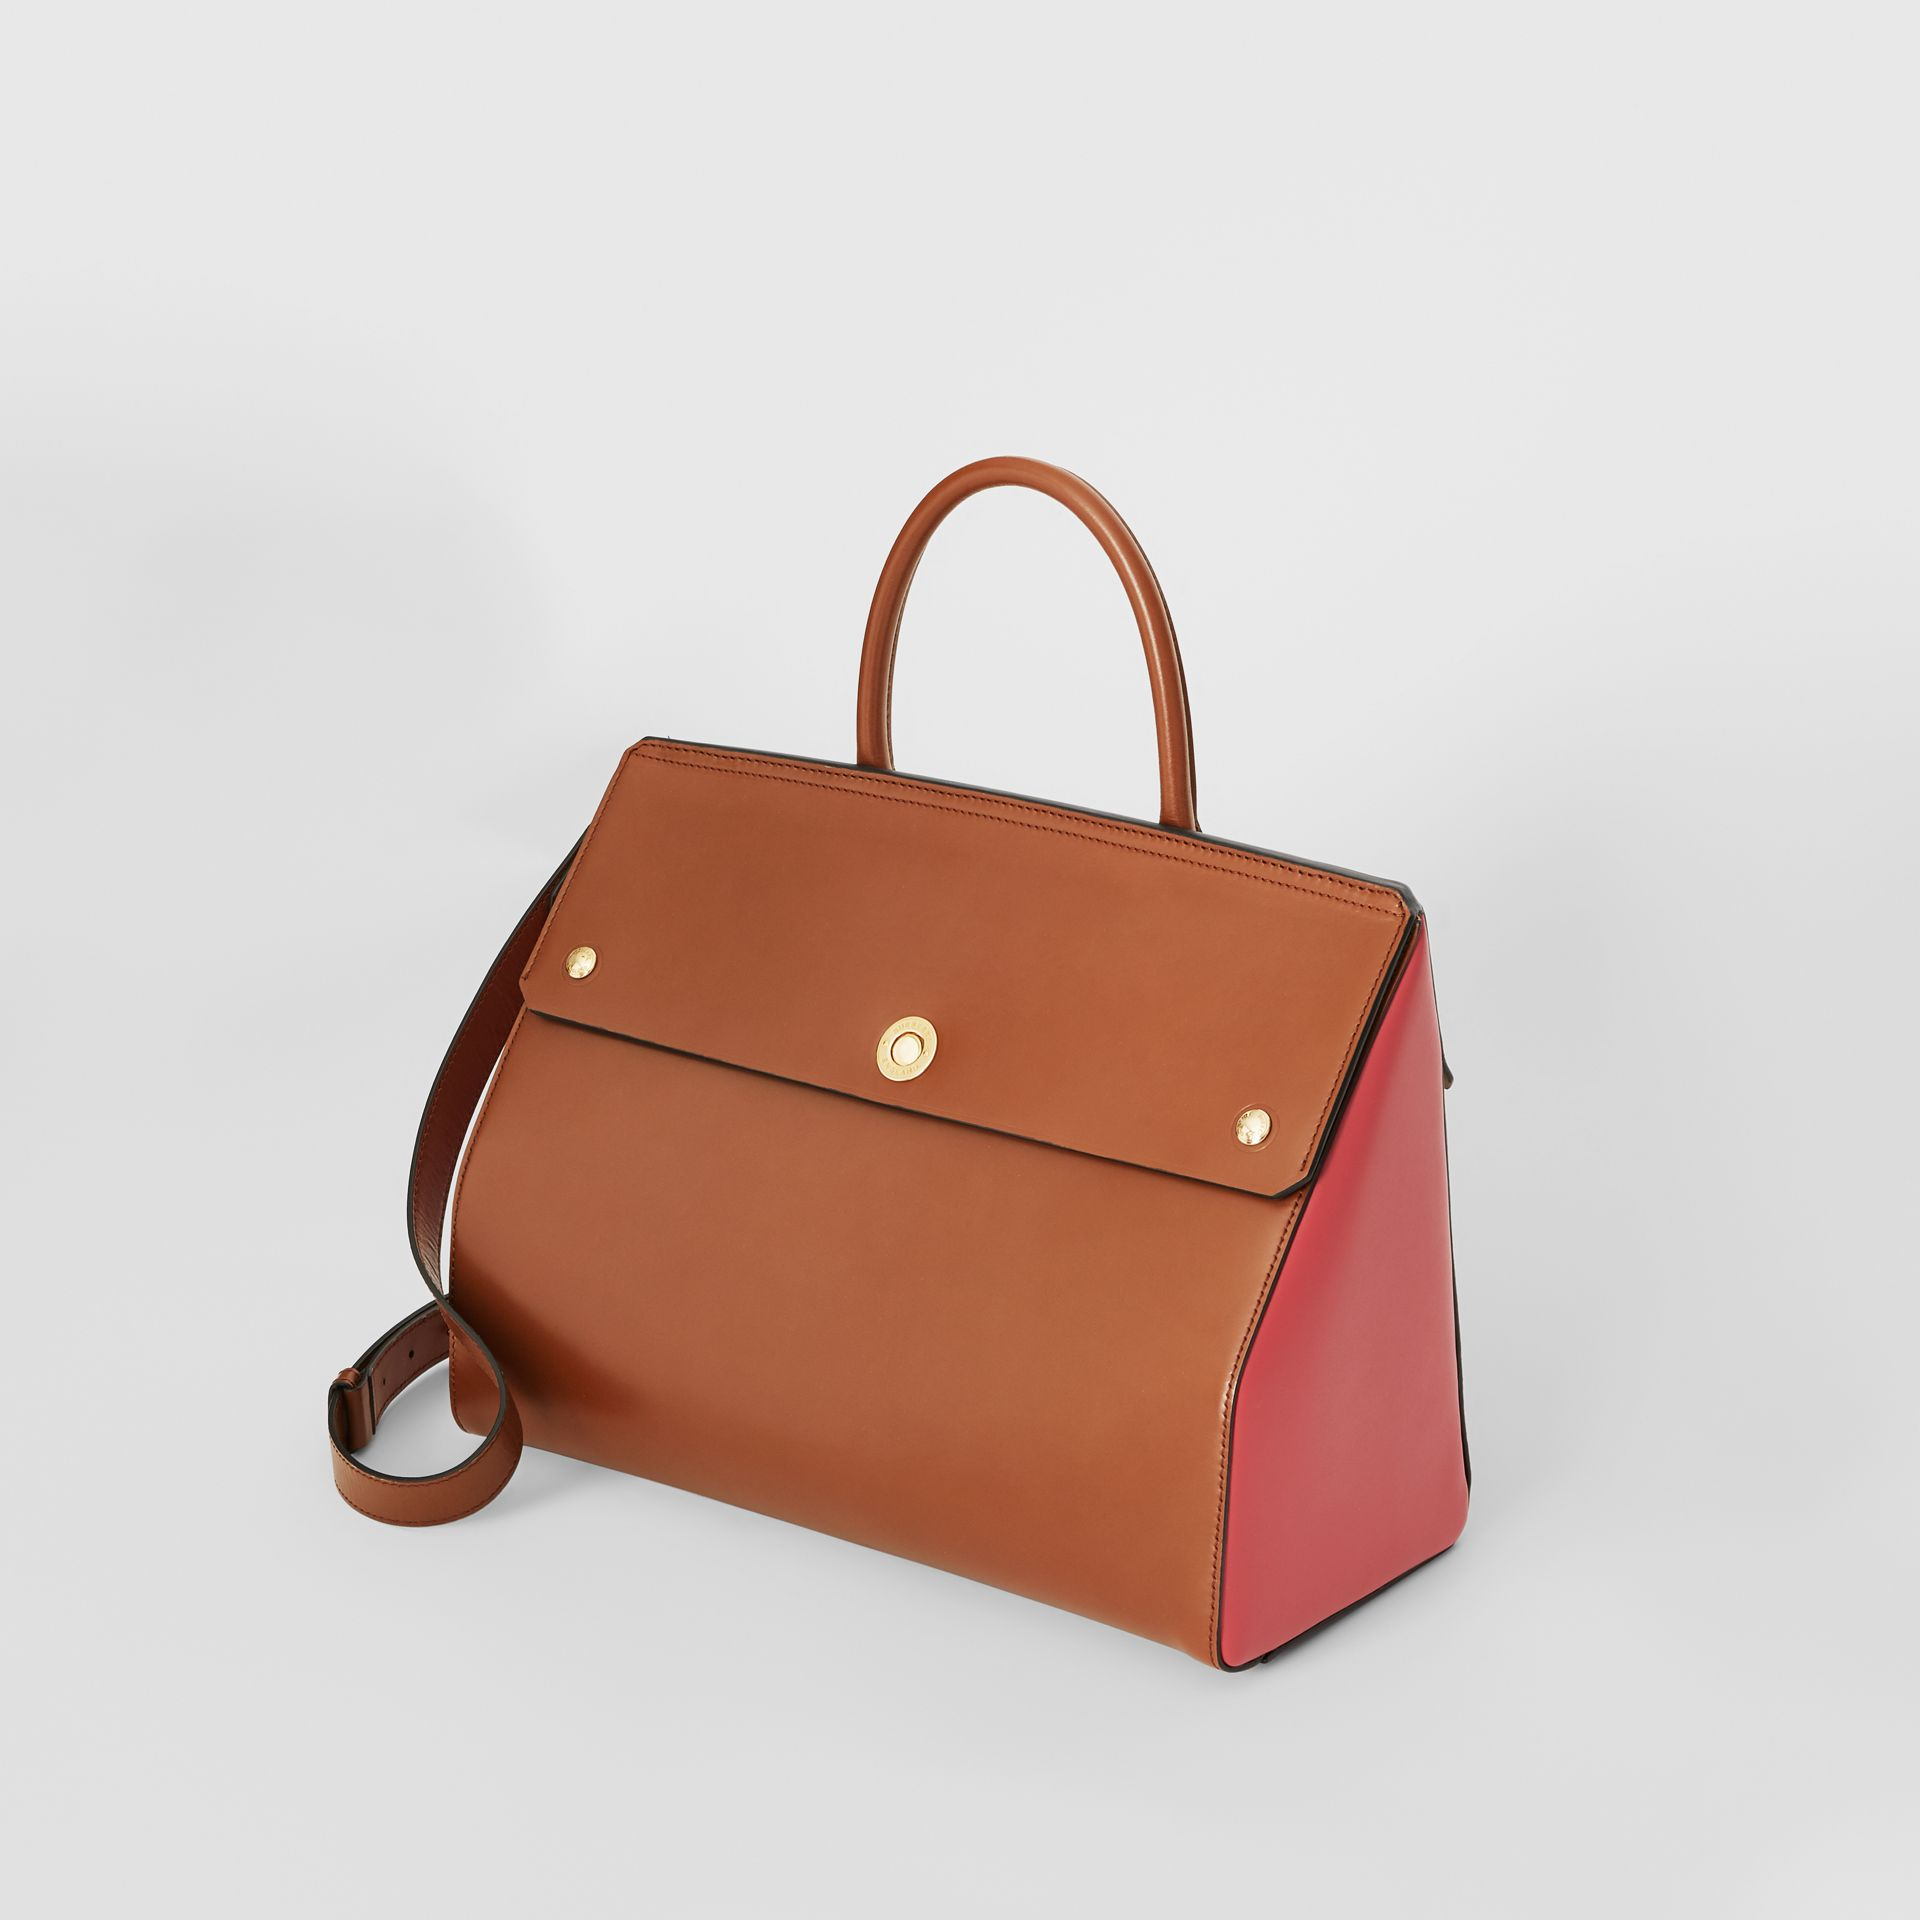 Medium Leather Elizabeth Bag in Malt Brown - Women | Burberry Australia - gallery image 2